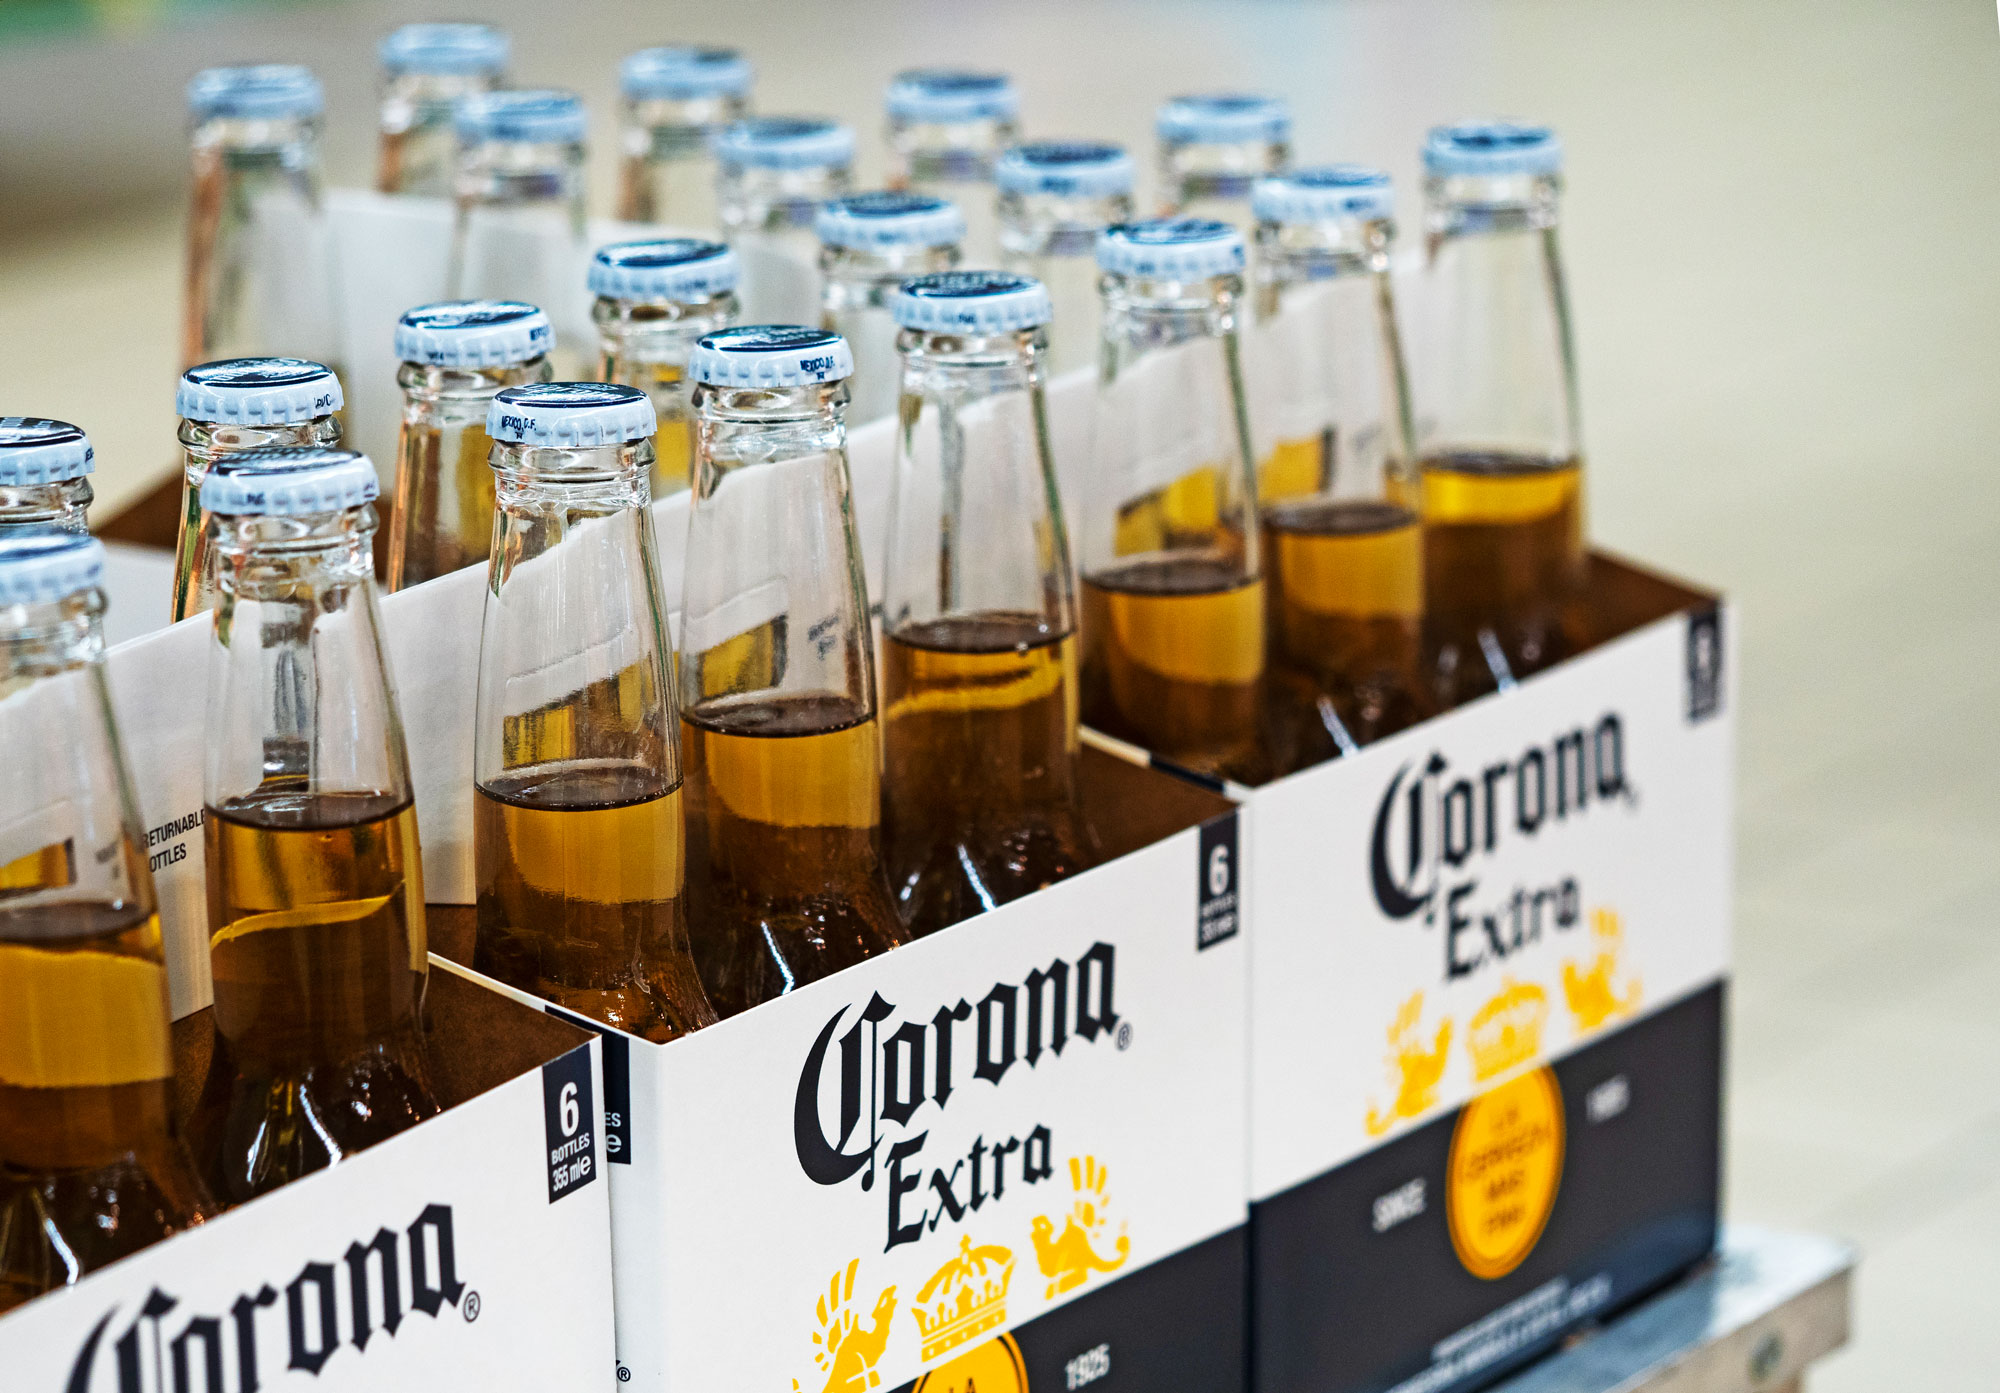 Bottles of Corona Extra beer are on a shelf in a store.